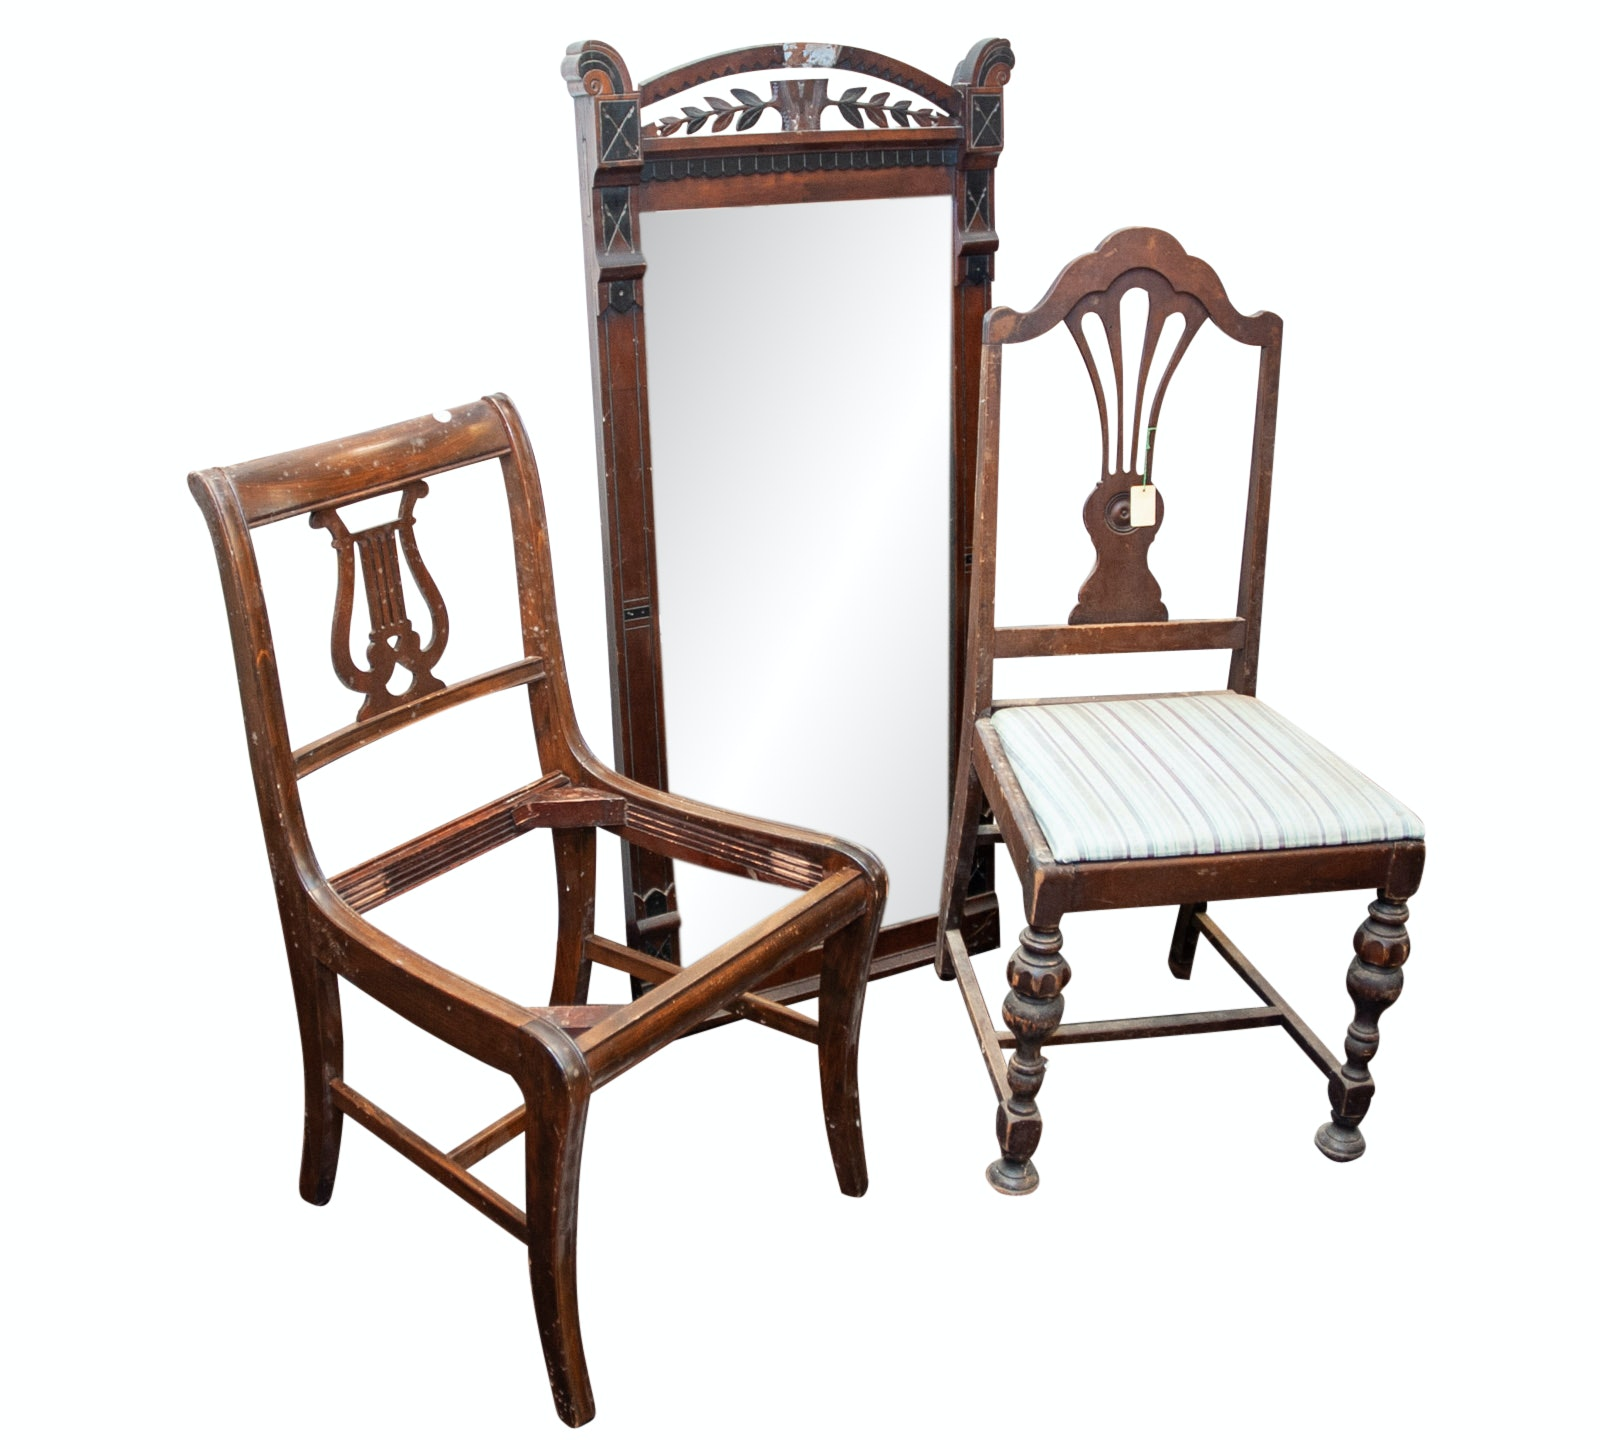 Vintage Chairs and Carved Wood Mirror